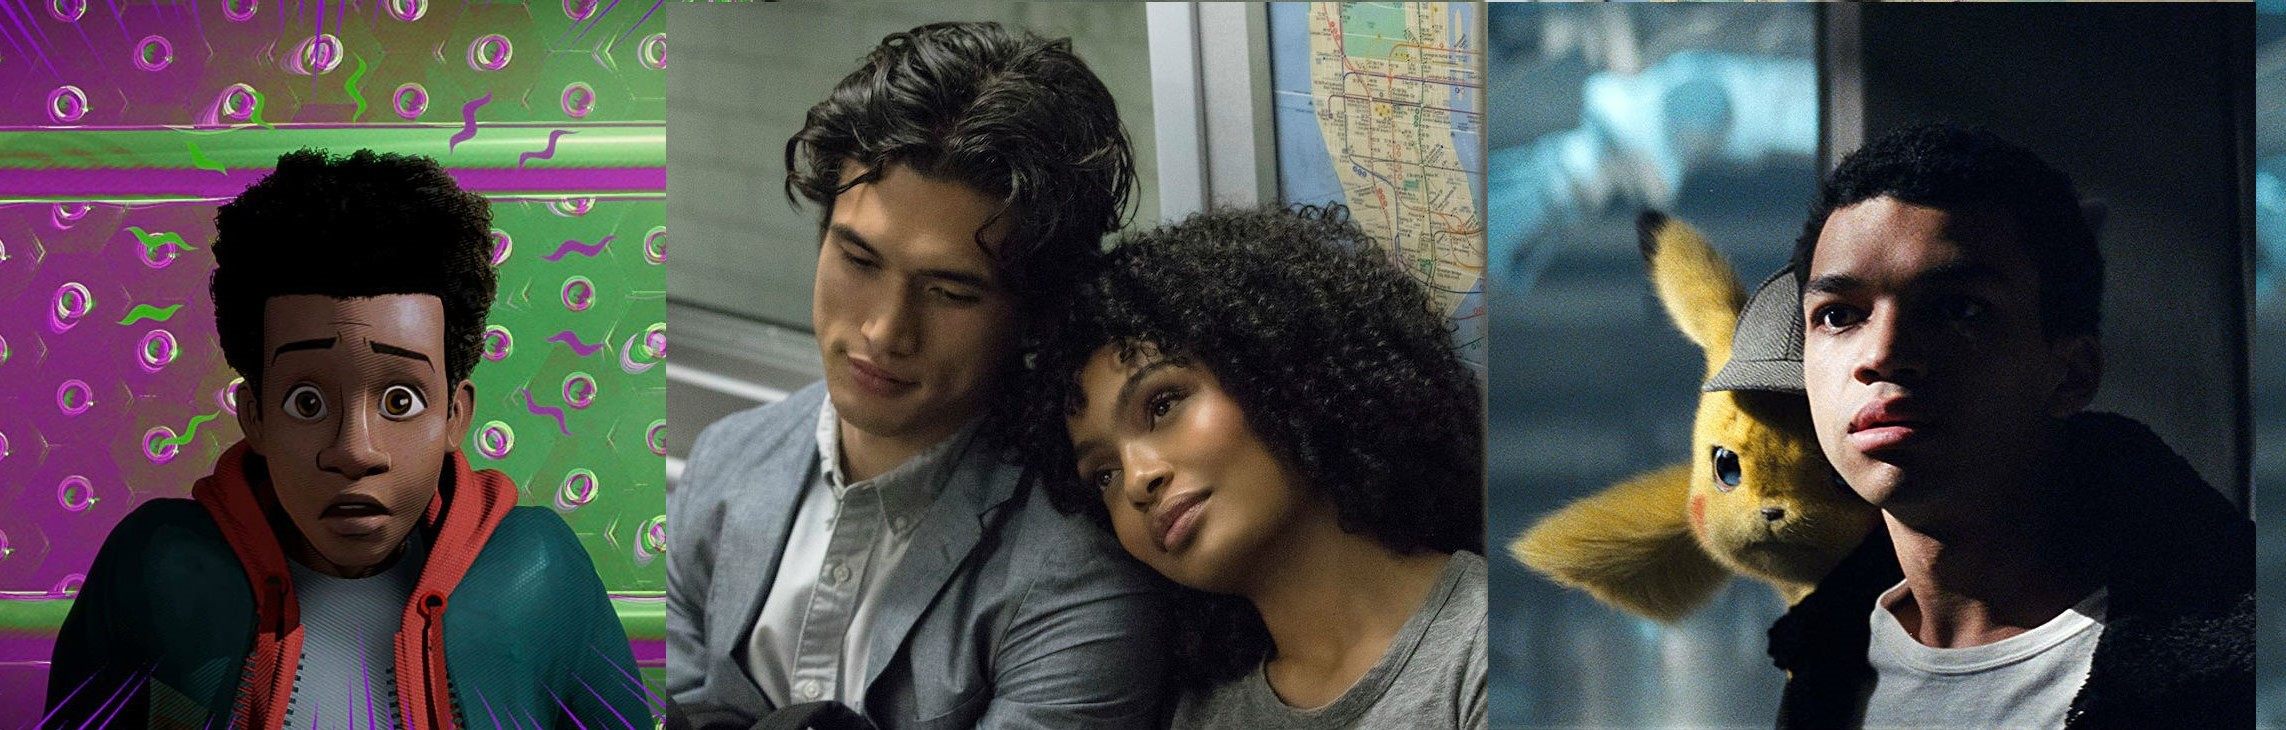 Spider-Man, Pokémon, and Star-Crossed Lovers: Mixed Race Characters Take the Lead